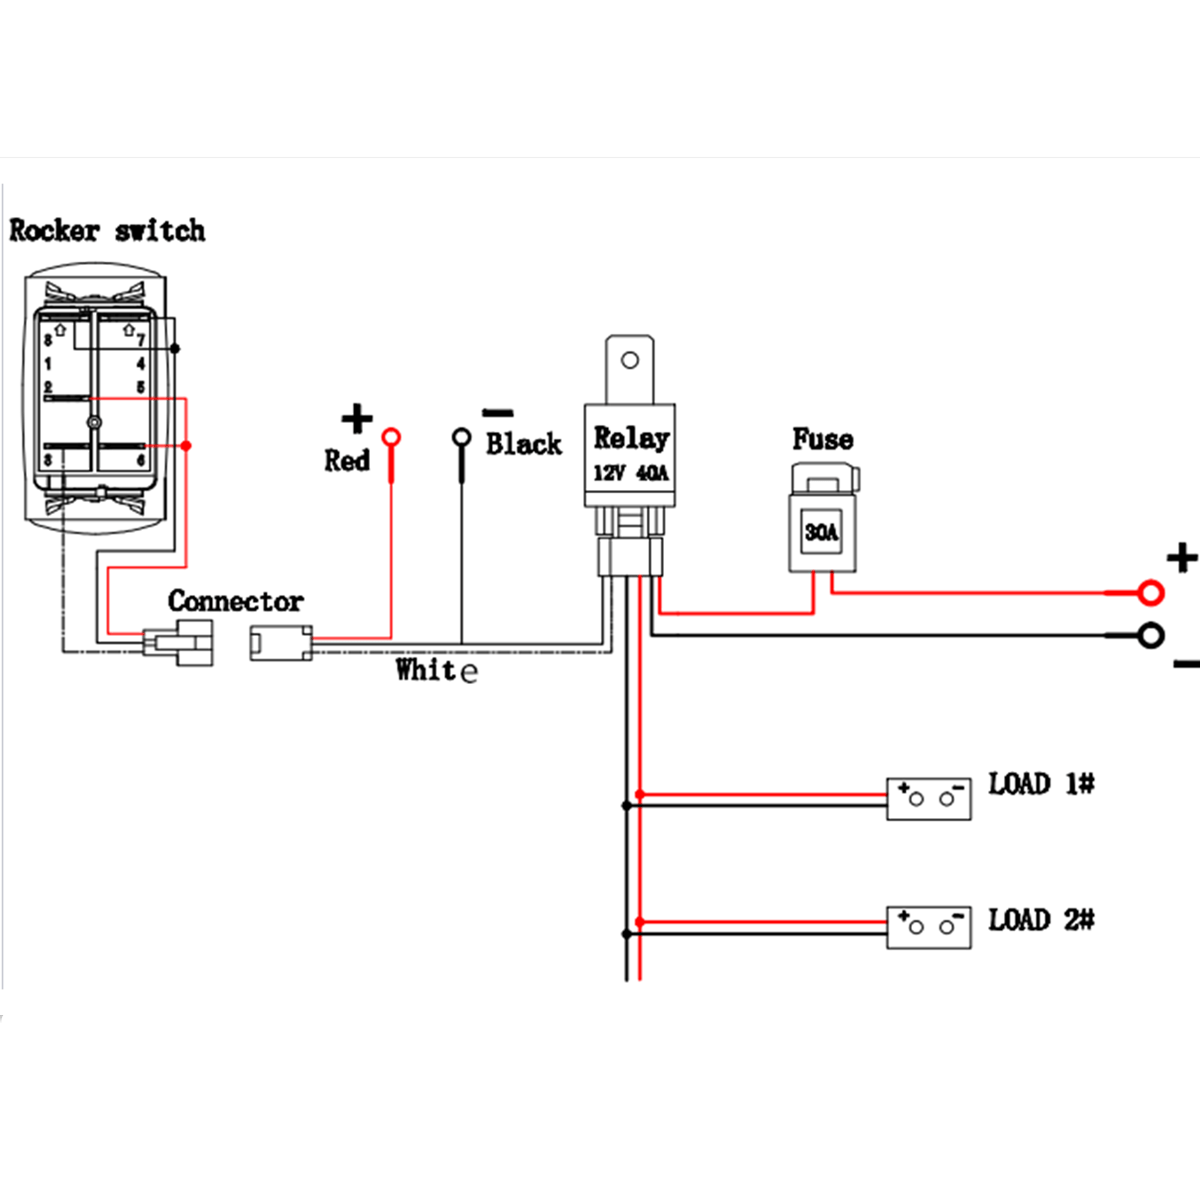 hight resolution of 12v switch and relay wiring data wiring diagram preview 12v 40a led fog light wiring harness